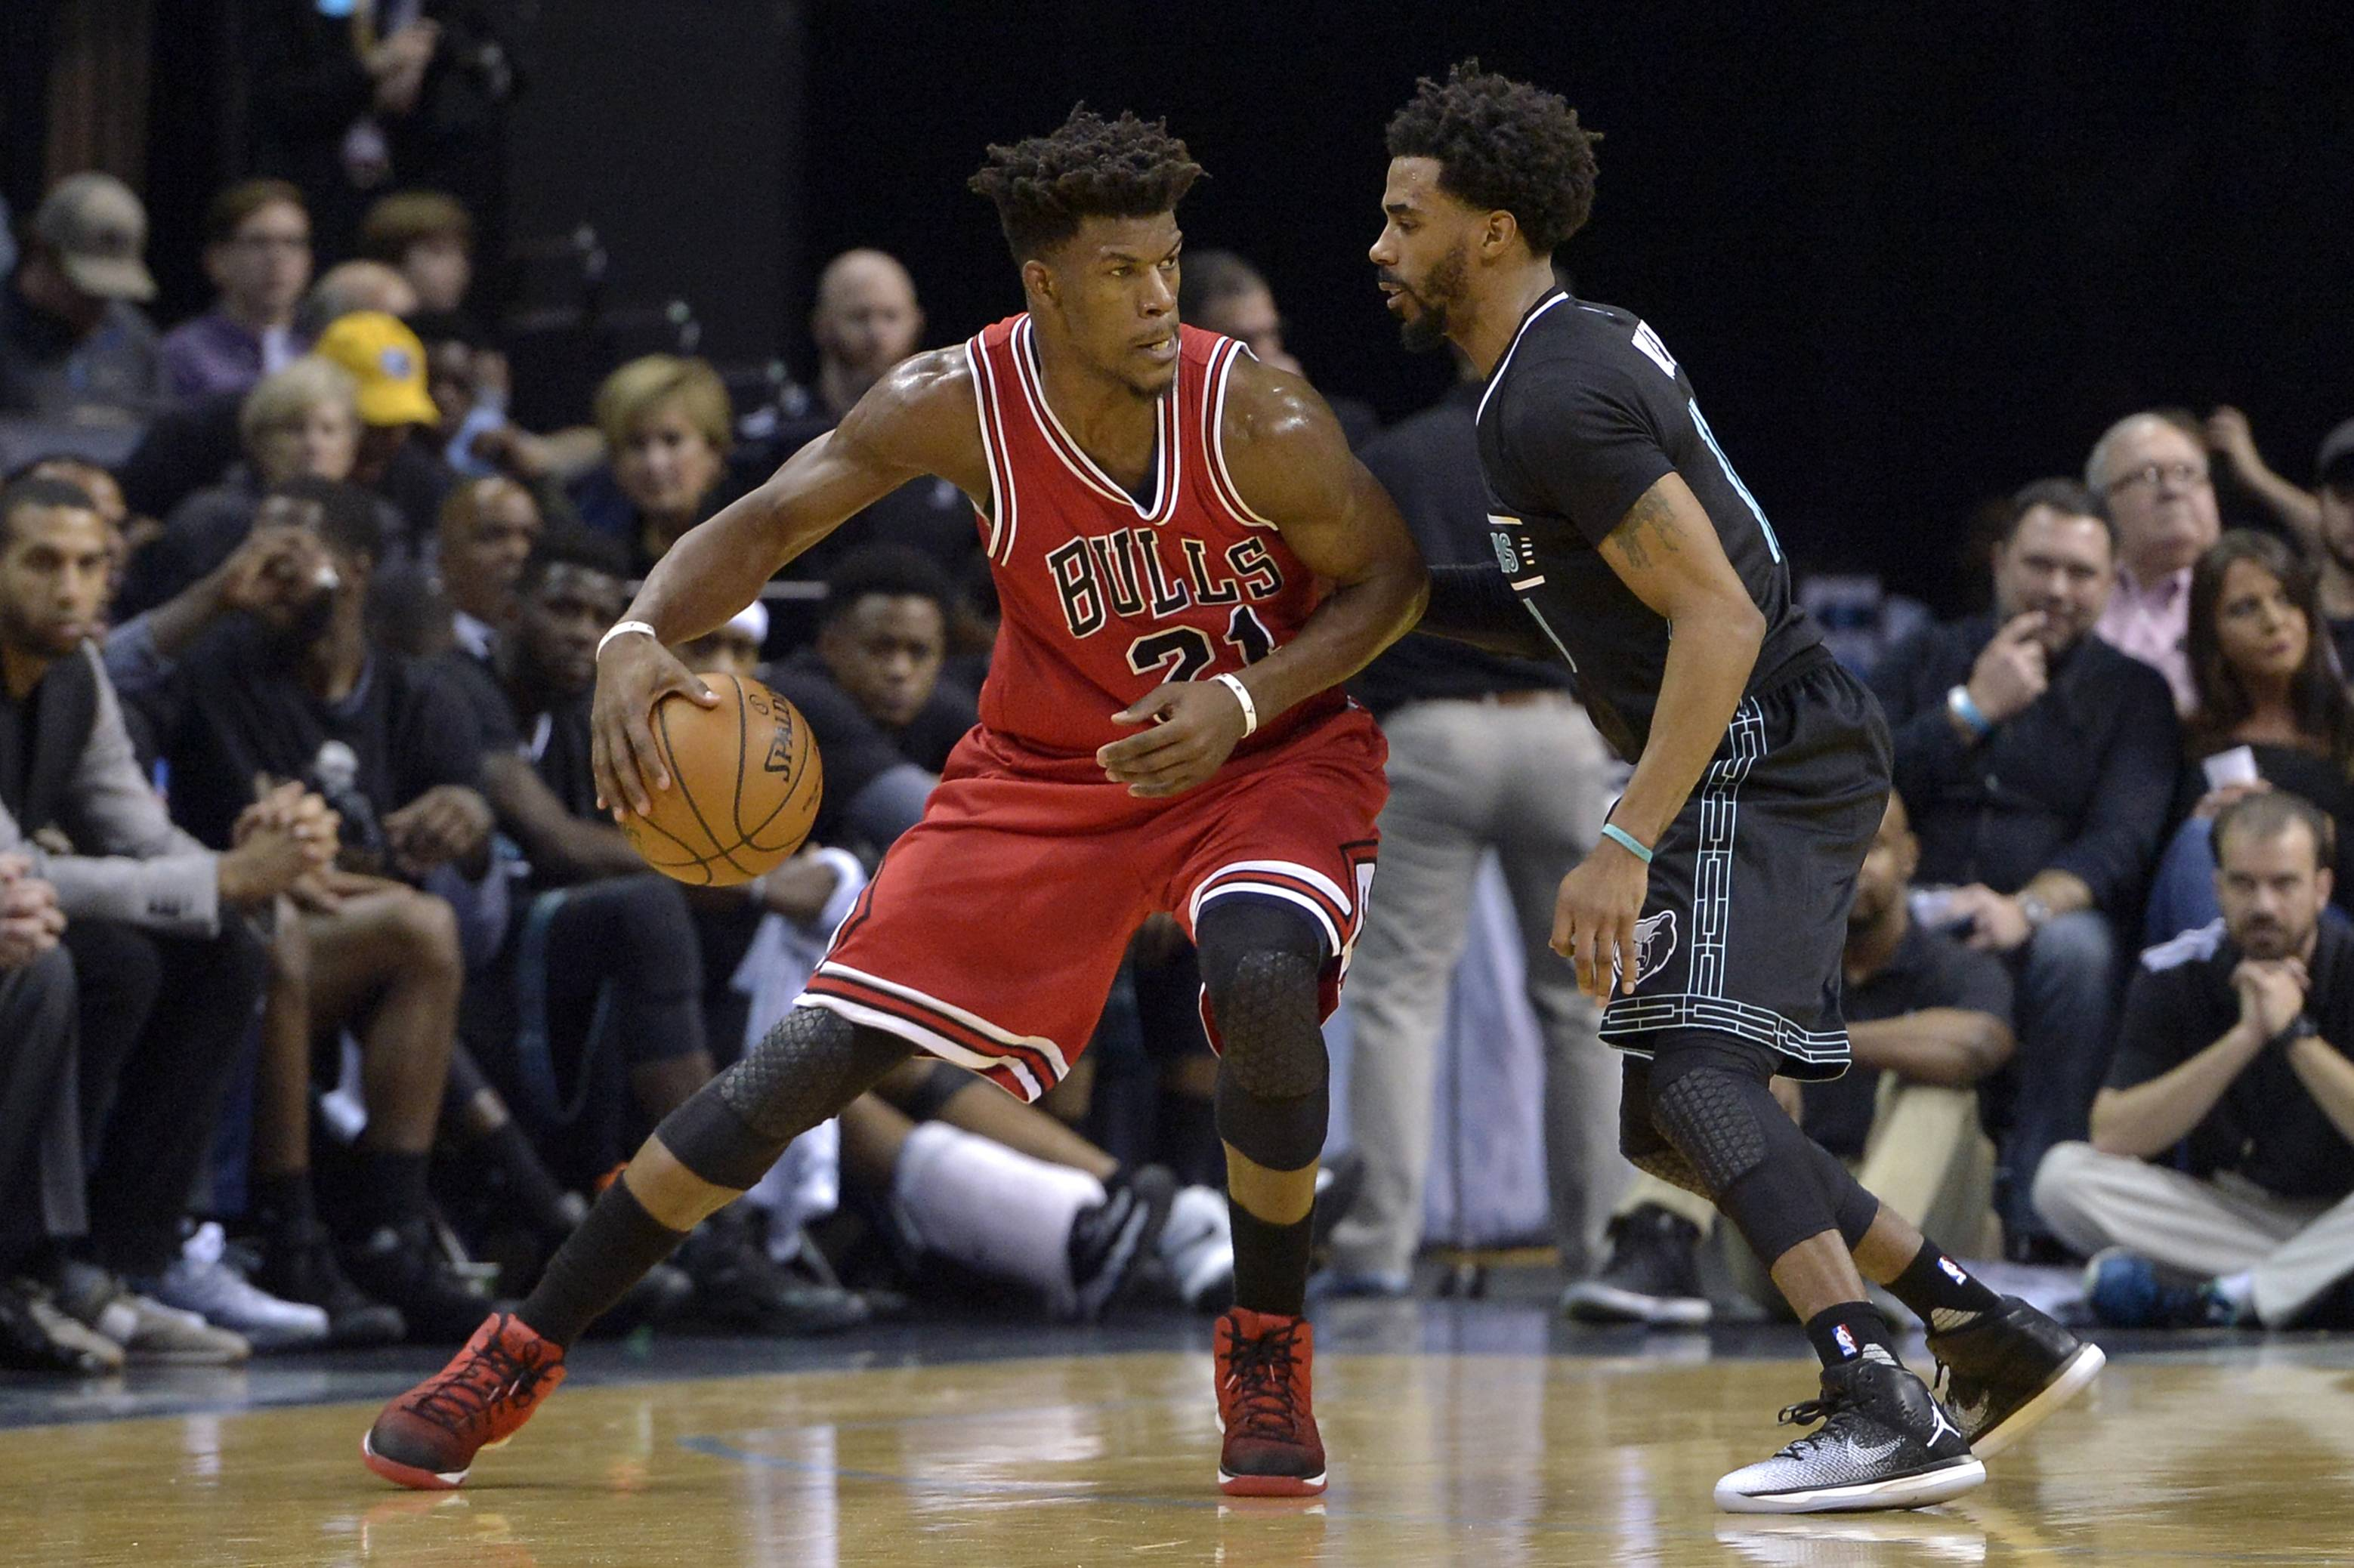 Chicago Bulls forward Jimmy Butler (21) controls the ball against Memphis Grizzlies guard Mike Conley in the first half of an NBA basketball game Sunday, Jan. 15, 2017, in Memphis, Tenn. (AP Photo/Brandon Dill)